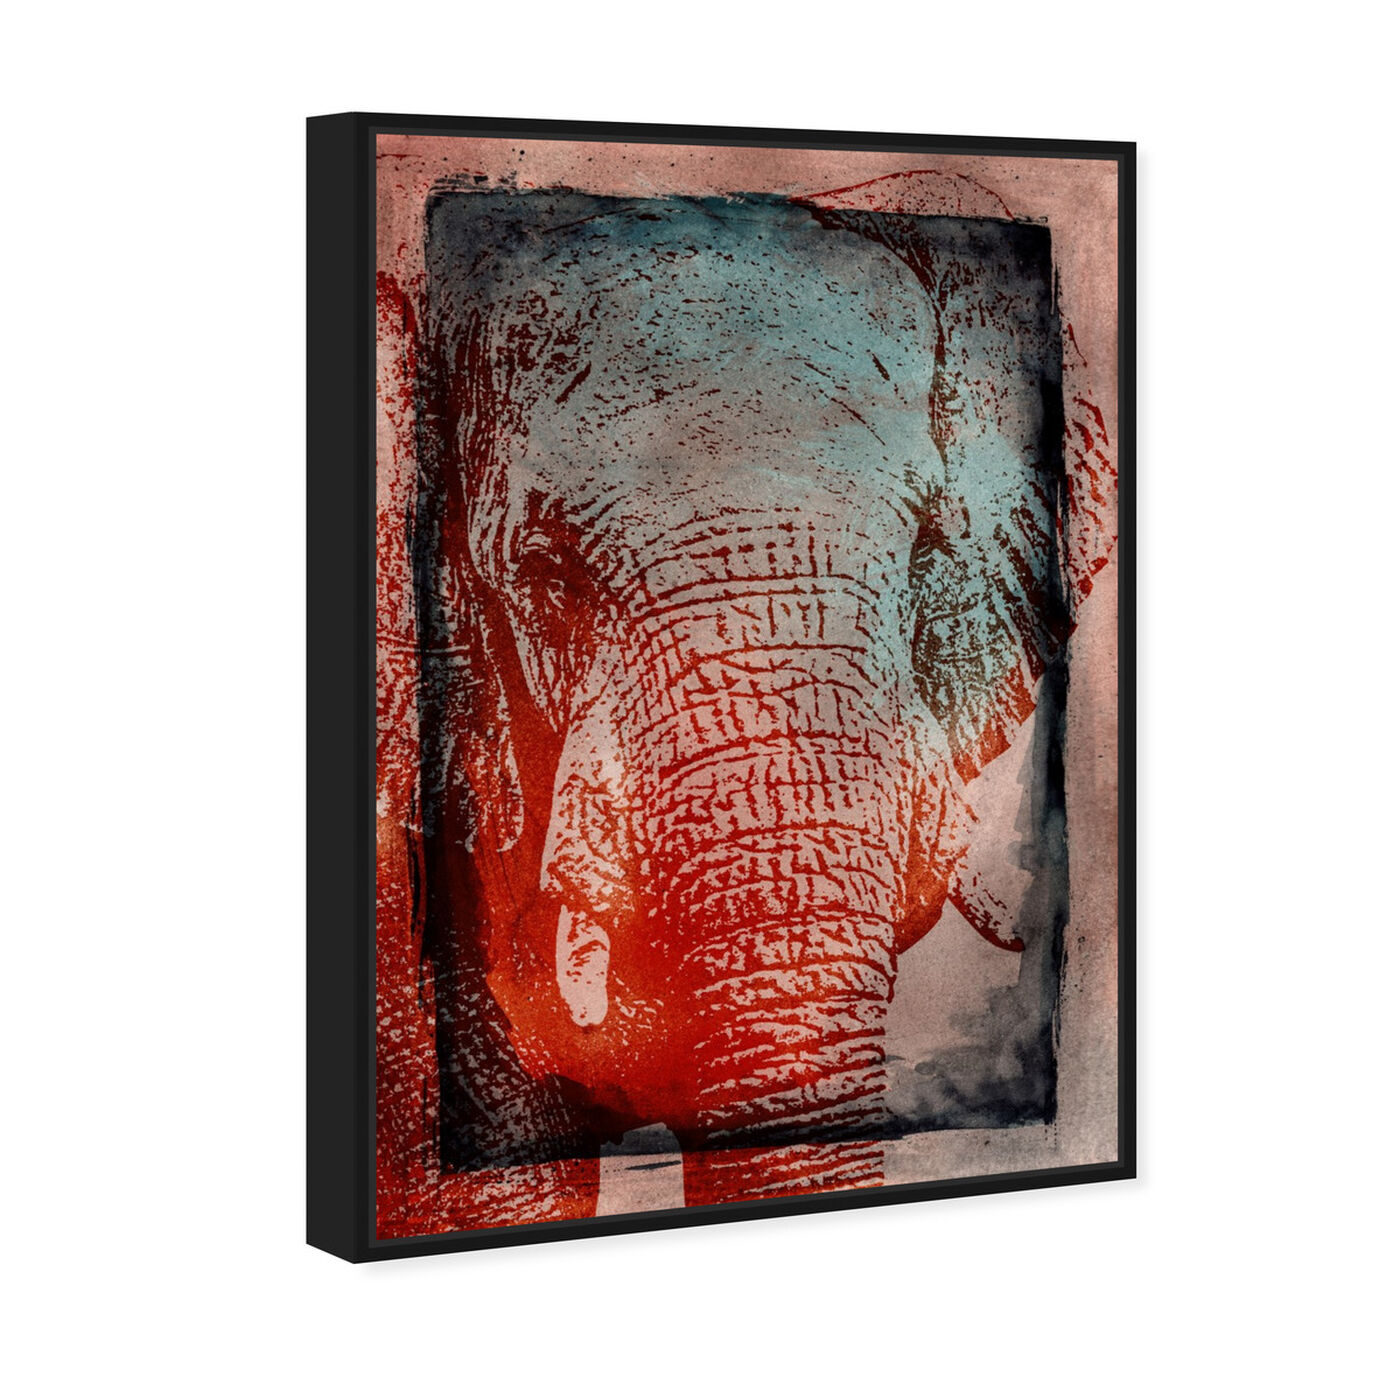 Angled view of Elephant in the Wild featuring animals and zoo and wild animals art.